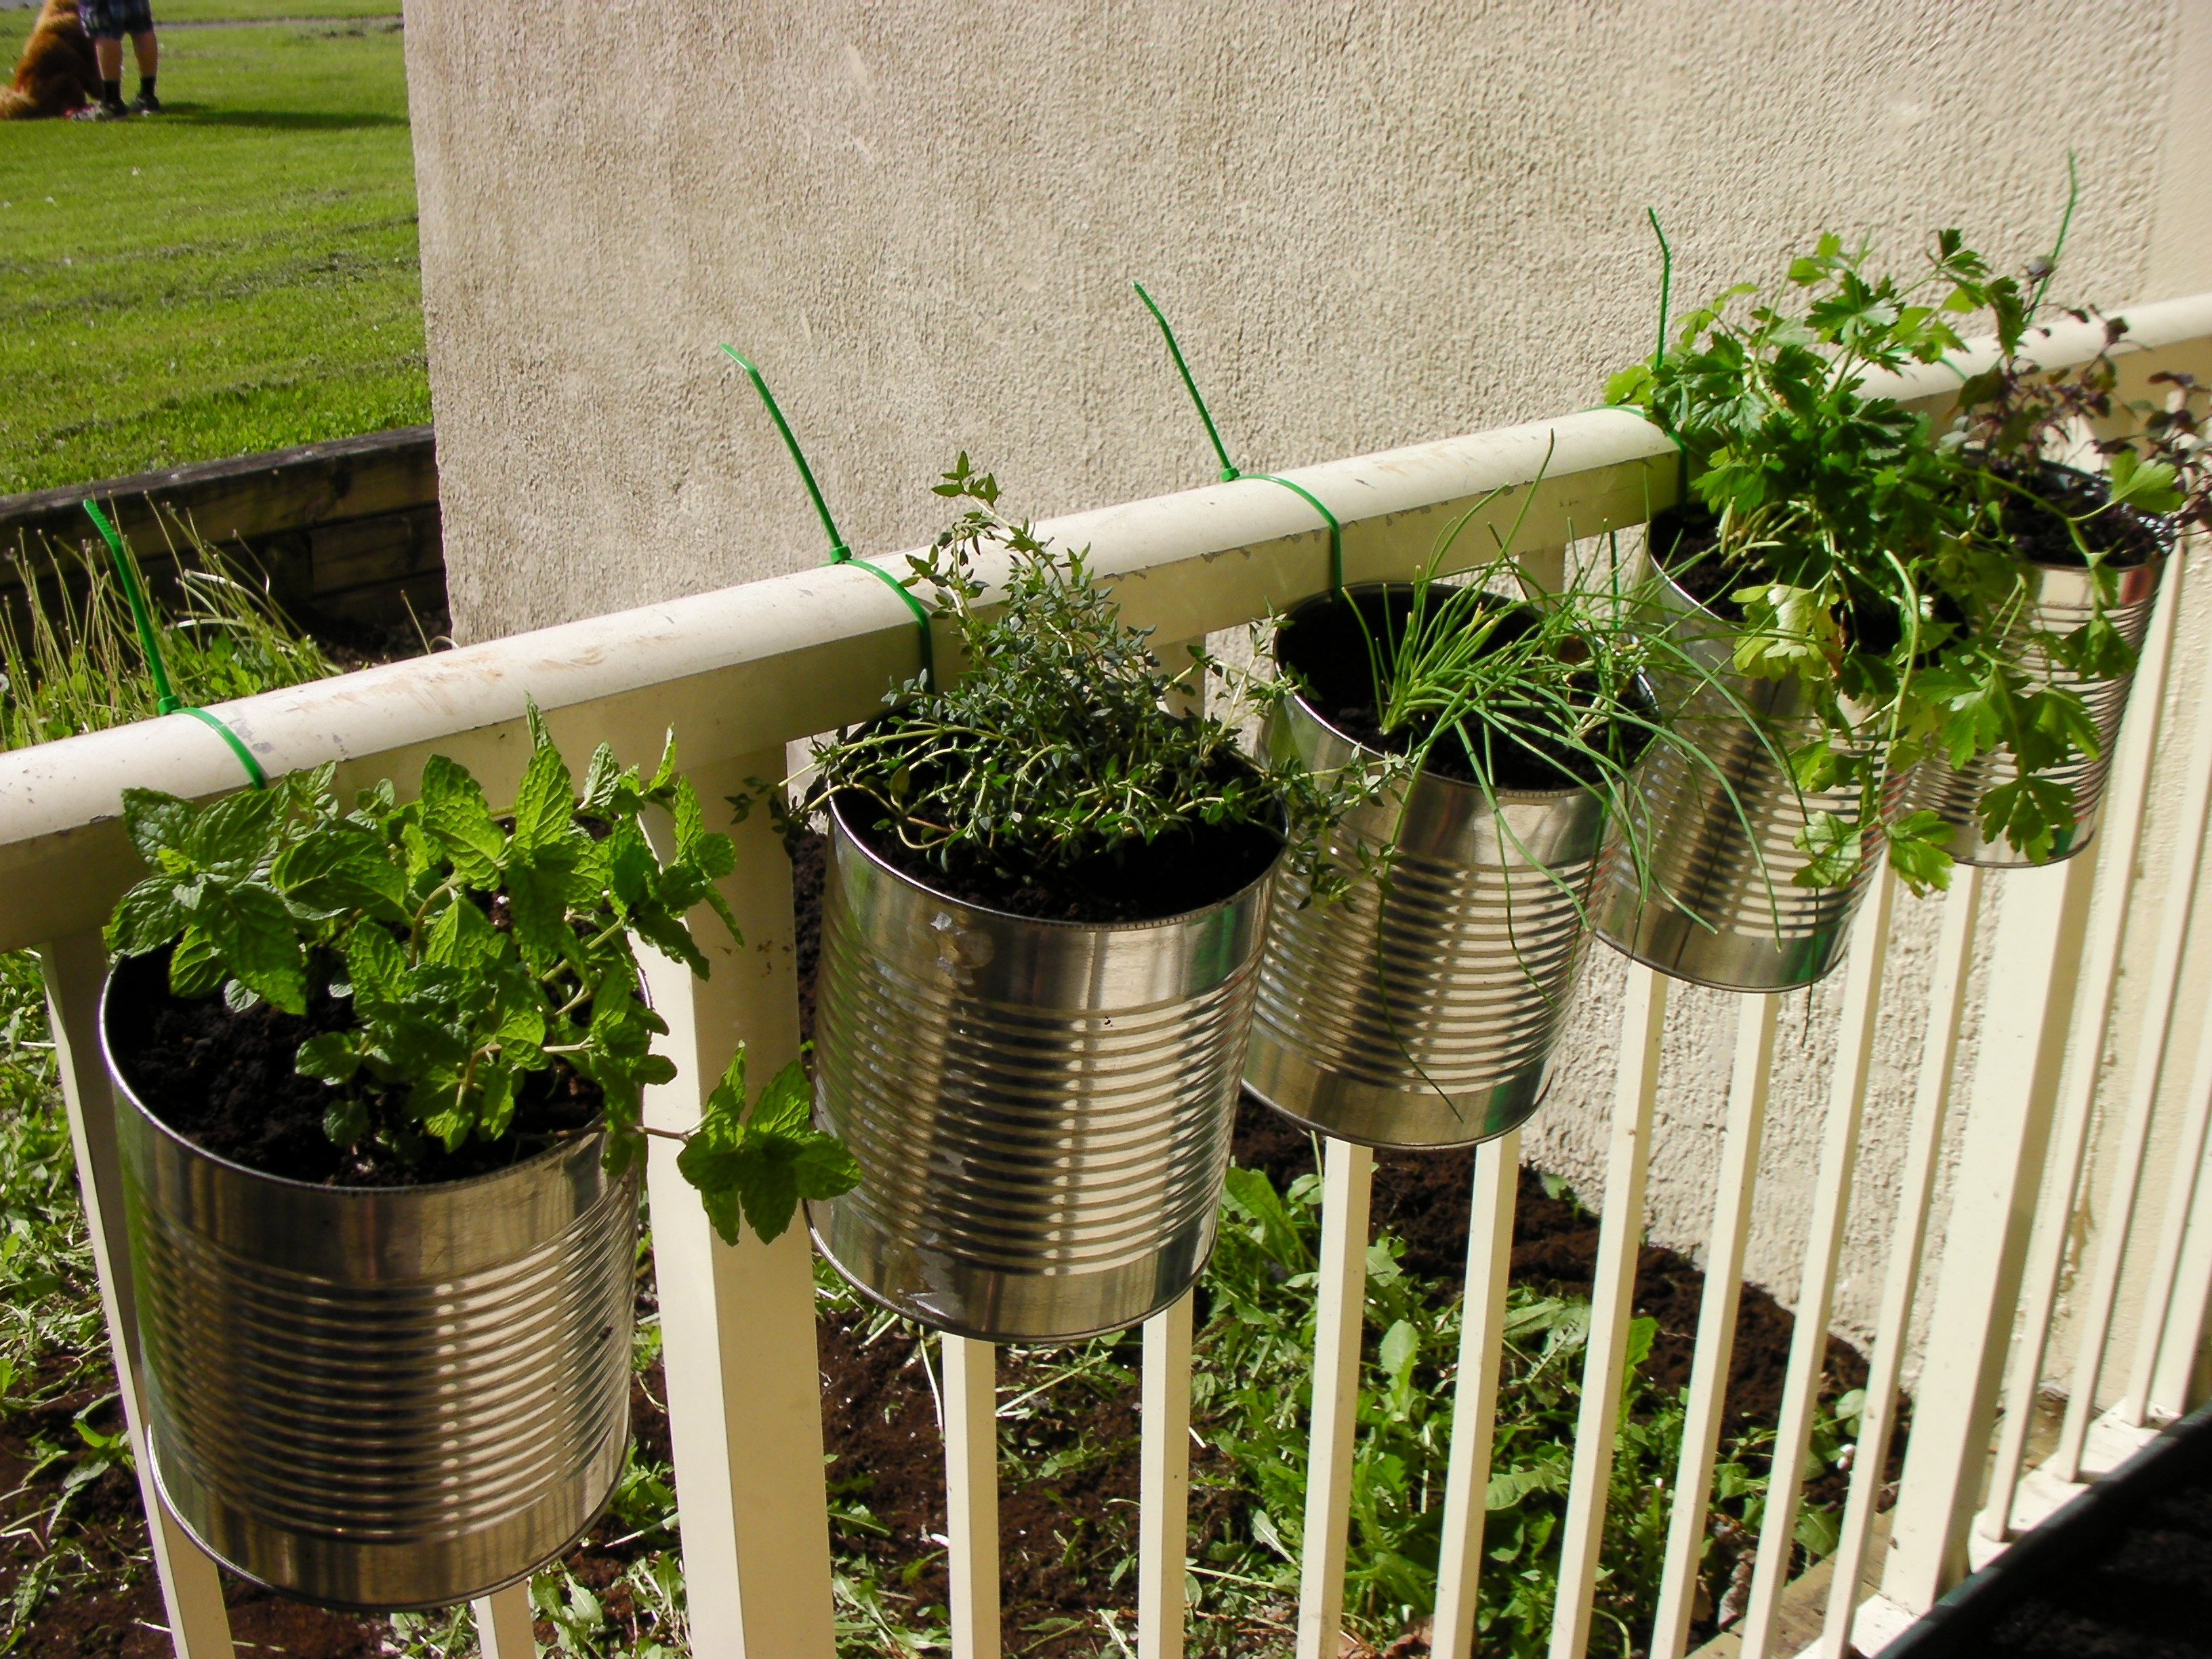 Herbs In Coffee Cans, Could Use Soup Cans Or Mason